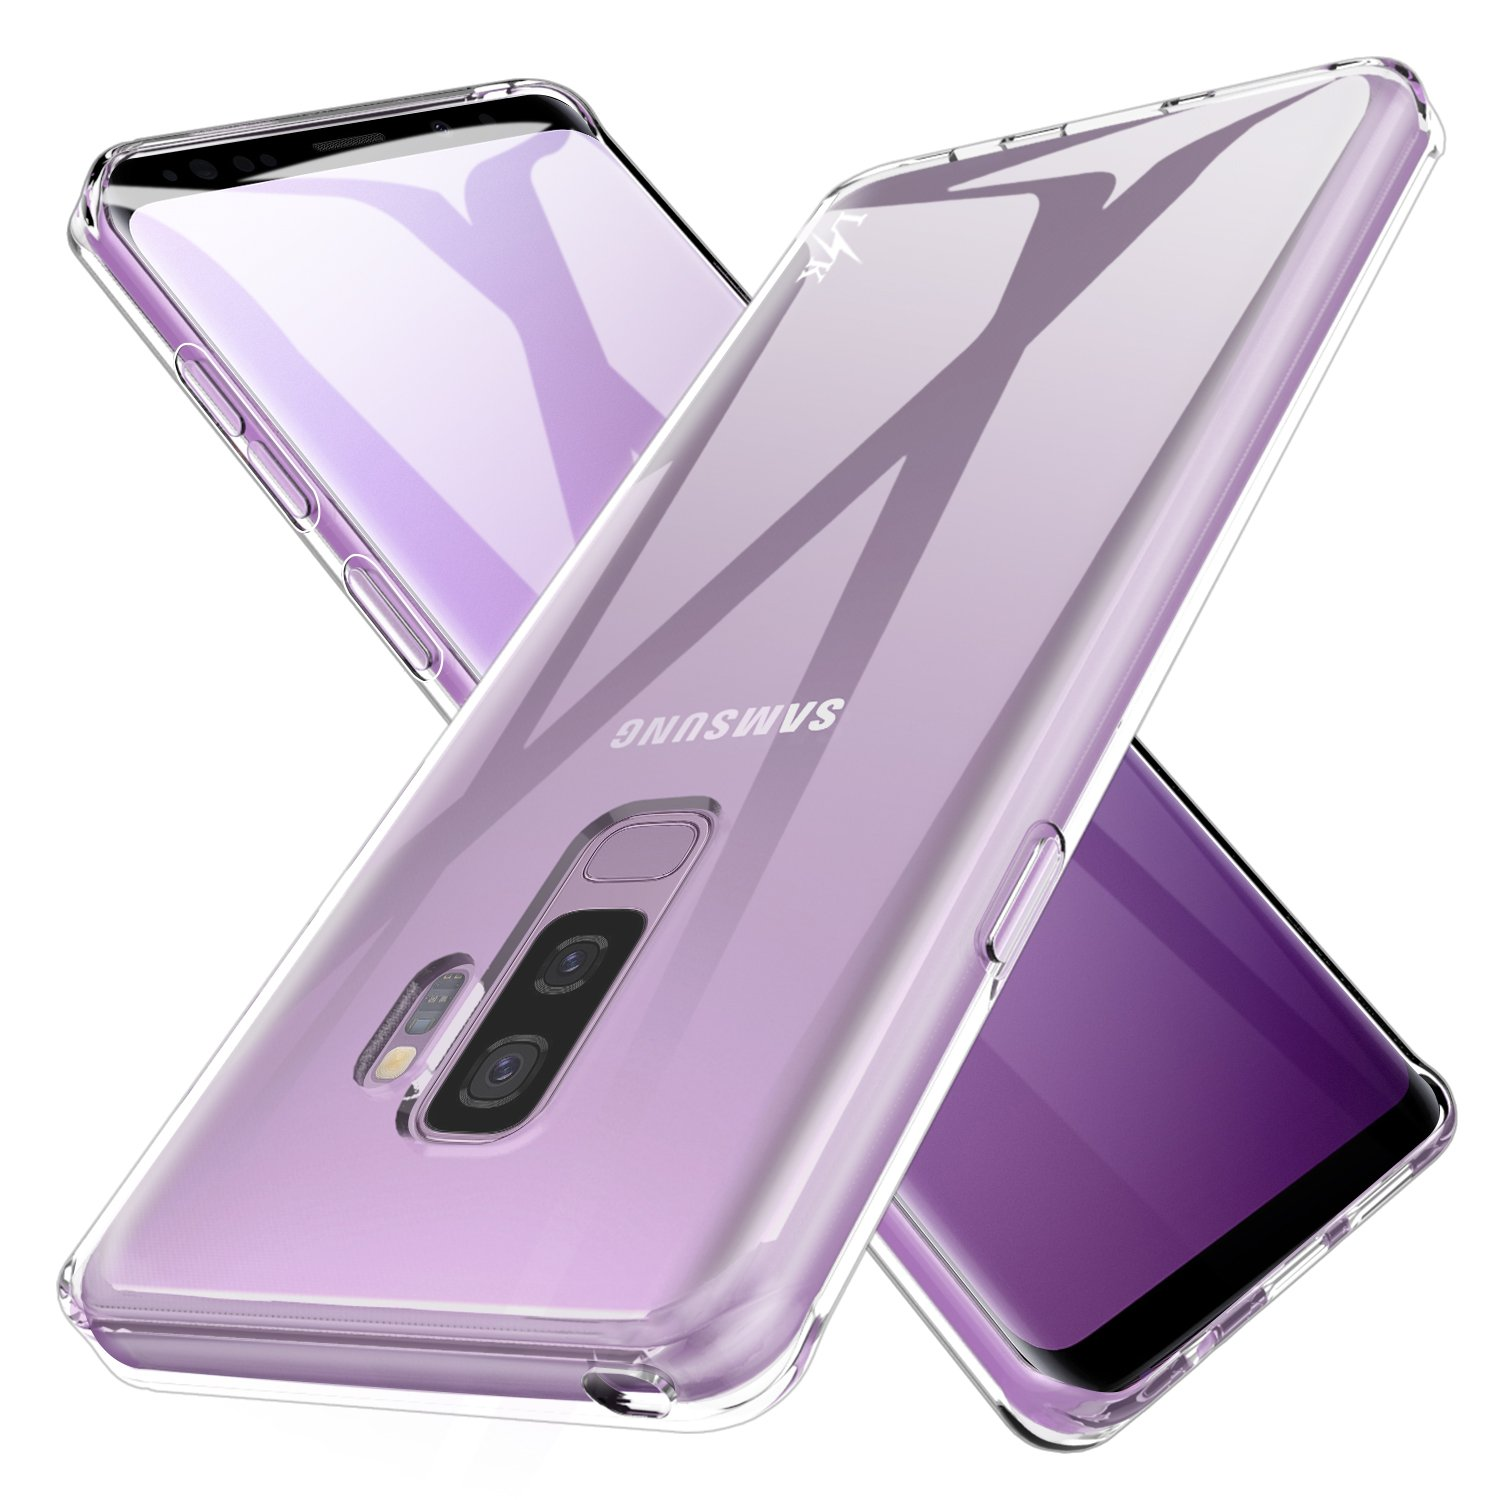 100% authentic 58805 becdb LK Case for Galaxy S9 Plus, Ultra [Slim Thin] Crystal Clear TPU Rubber Soft  Skin Silicone Protective Case Cover for Samsung Galaxy S9 Plus (Clear)